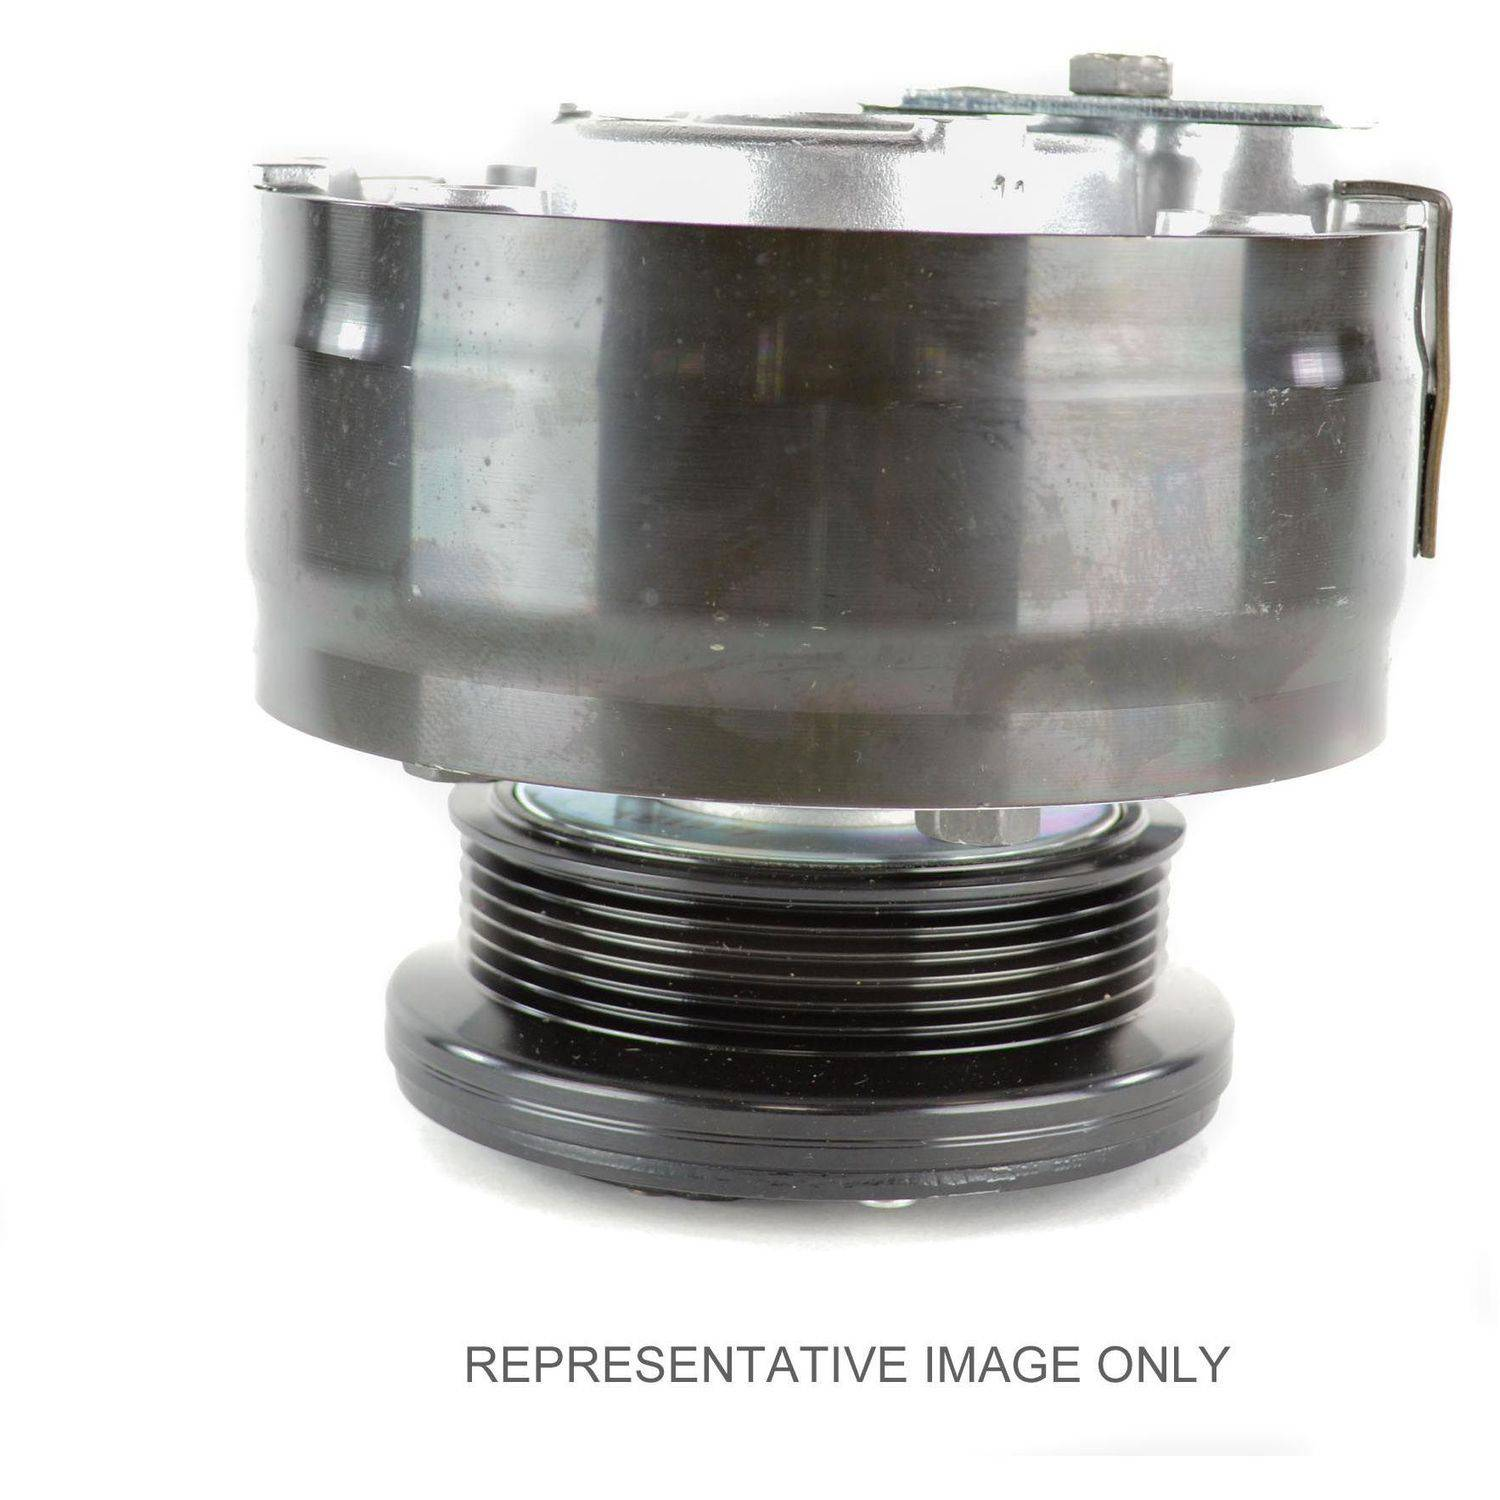 AC Delco 15-21517 A/C Compressor For Buick Lucerne, With clutch New